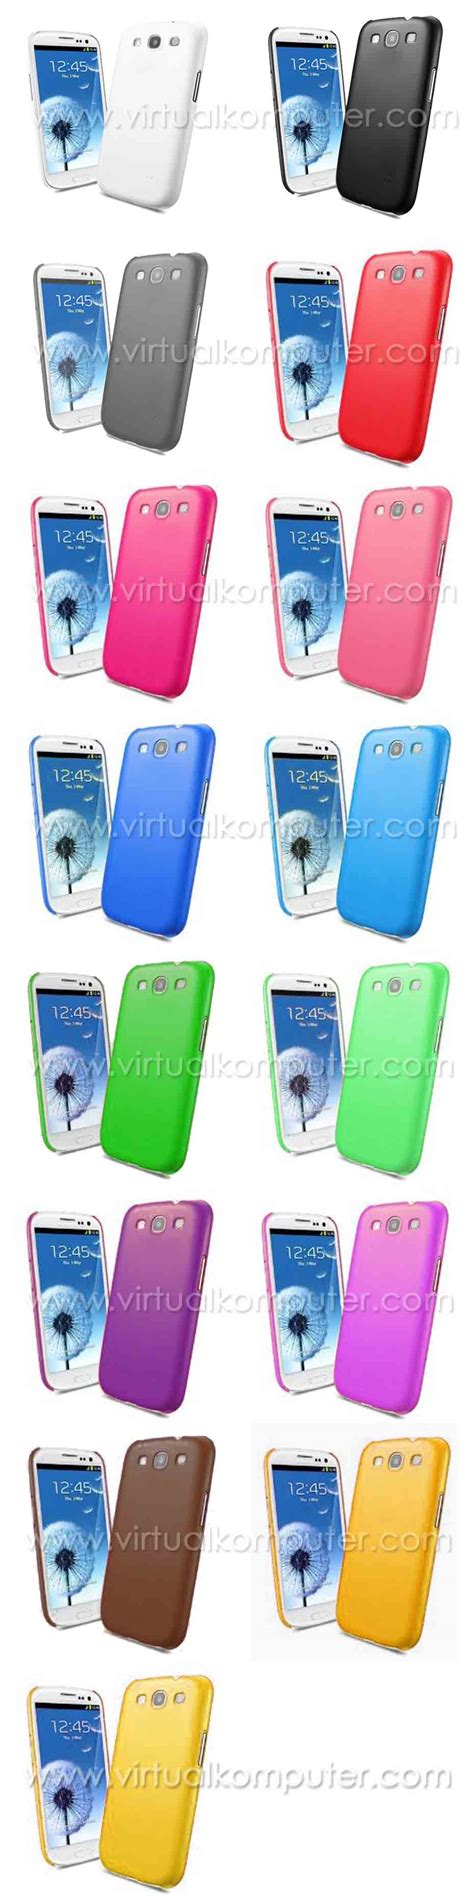 Harga Lcd Samsung S3 I9300 areahp softcase for samsung galaxy s3 i9300